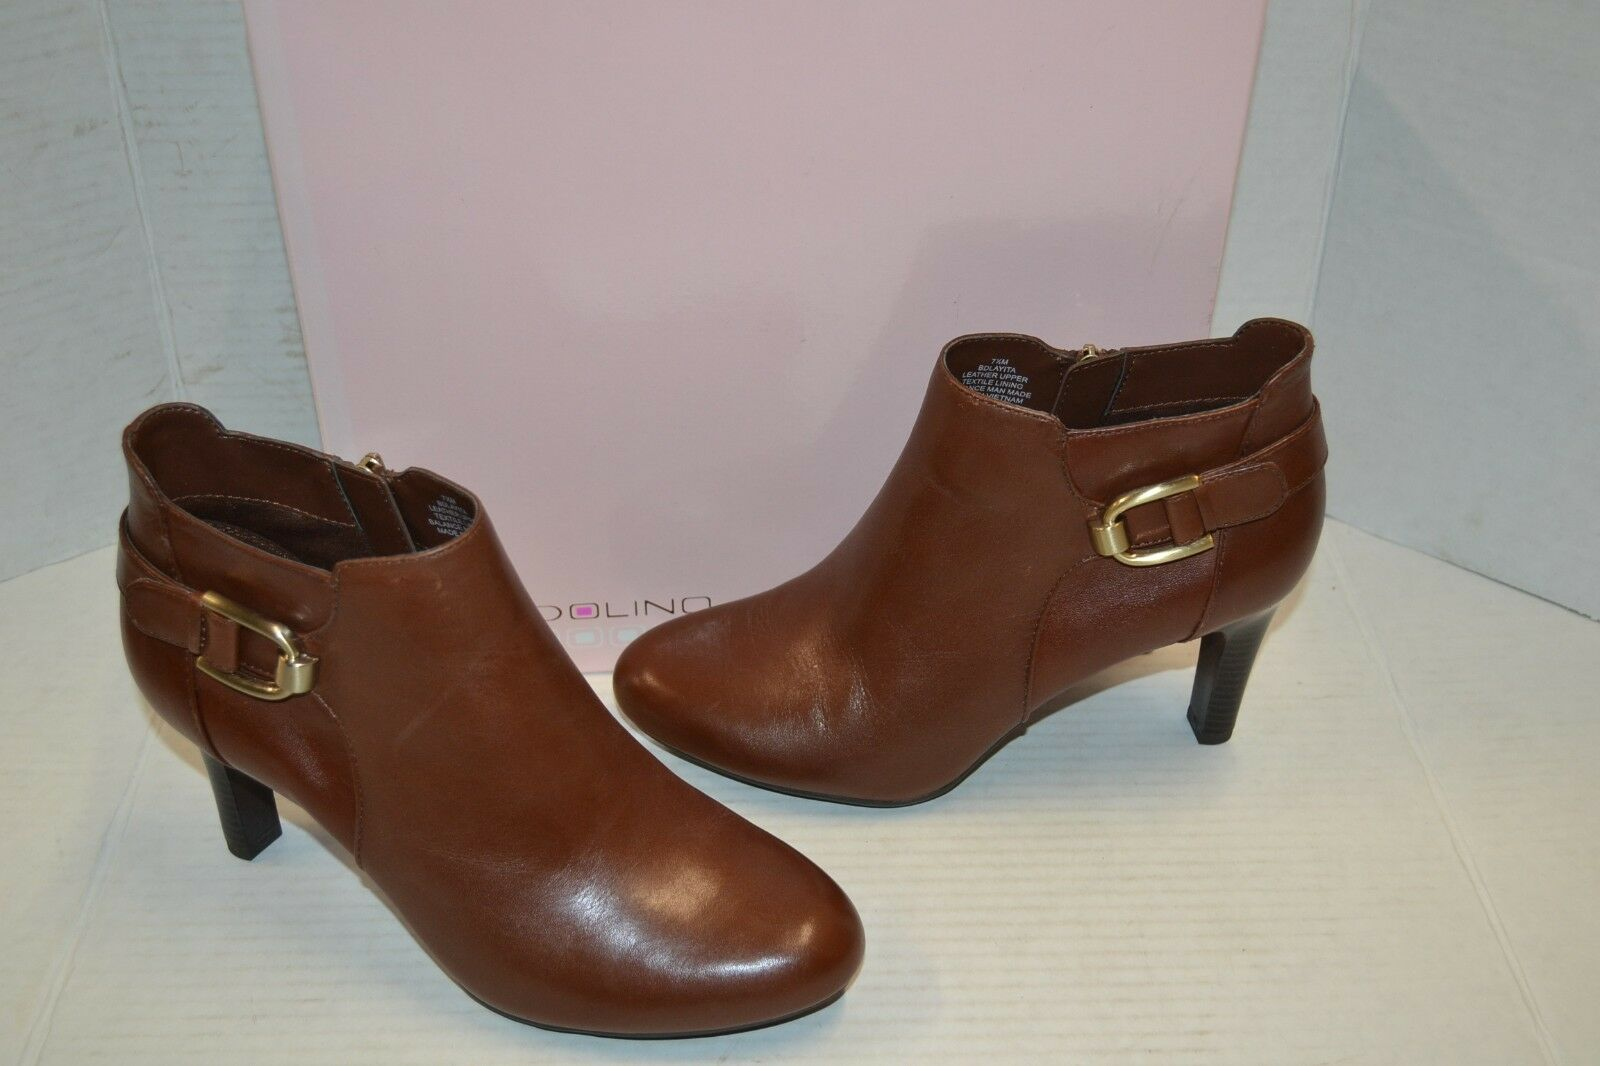 Bandolino Layita Round Toe 7.5 Leder FASHION ZIP BUCKLE 7.5 Toe M BROWN ANKLE Bootie 61d248